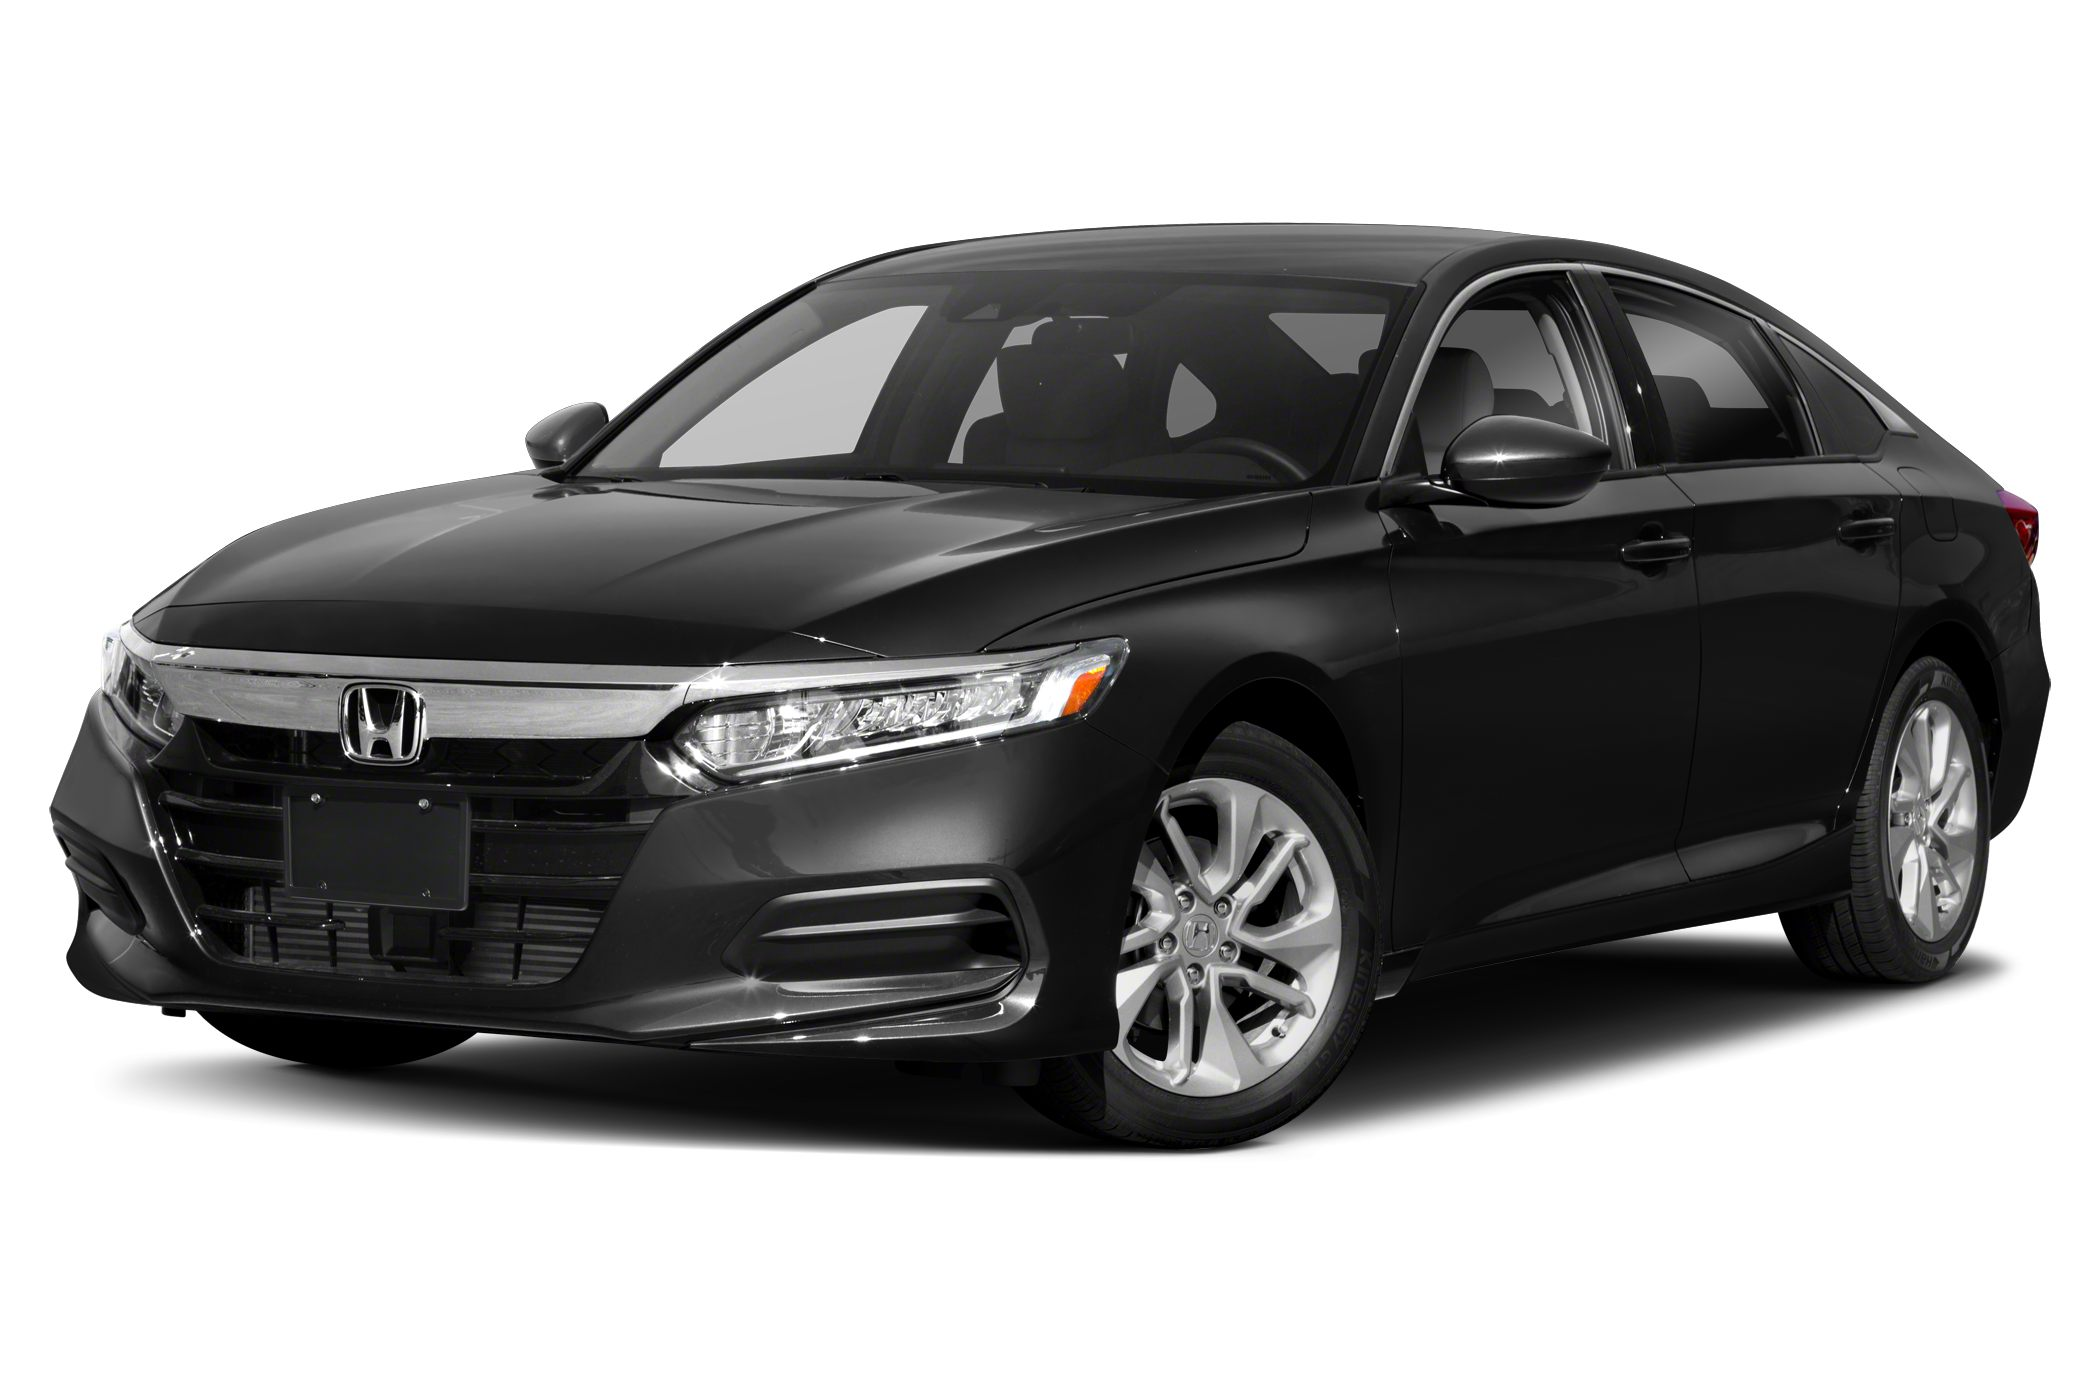 2018 Honda Accord Deals, Prices, Incentives & Leases ...